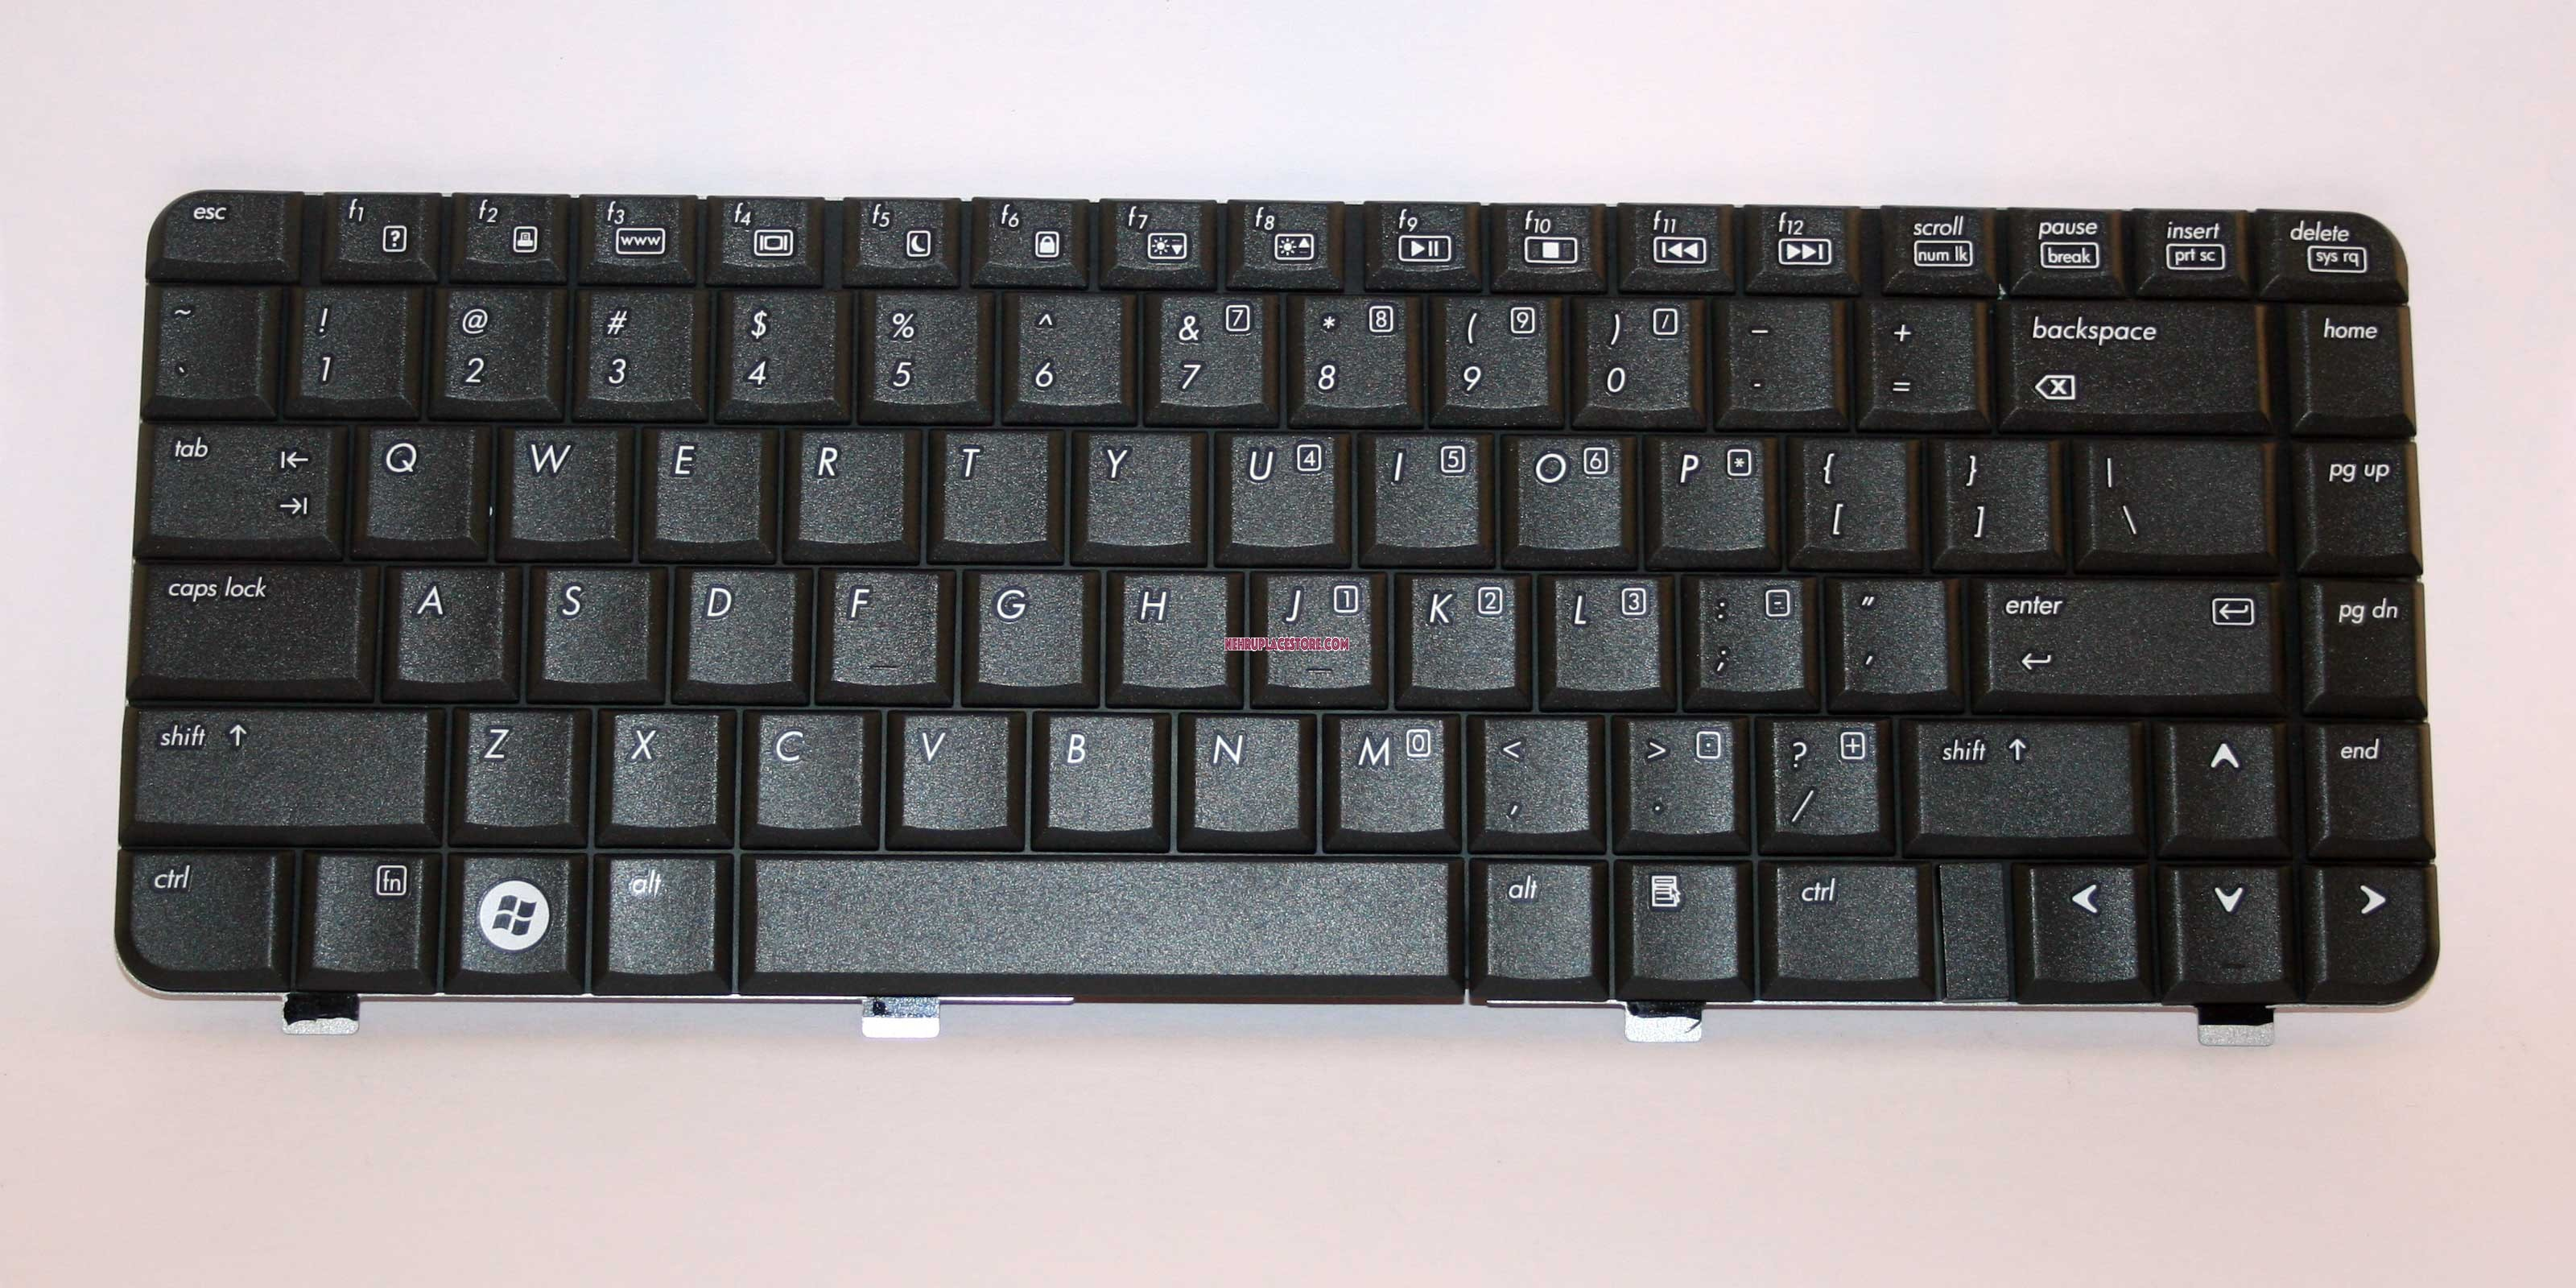 NEW Keyboard for HP Pavilion DV2000 V3000 417068-001 Black